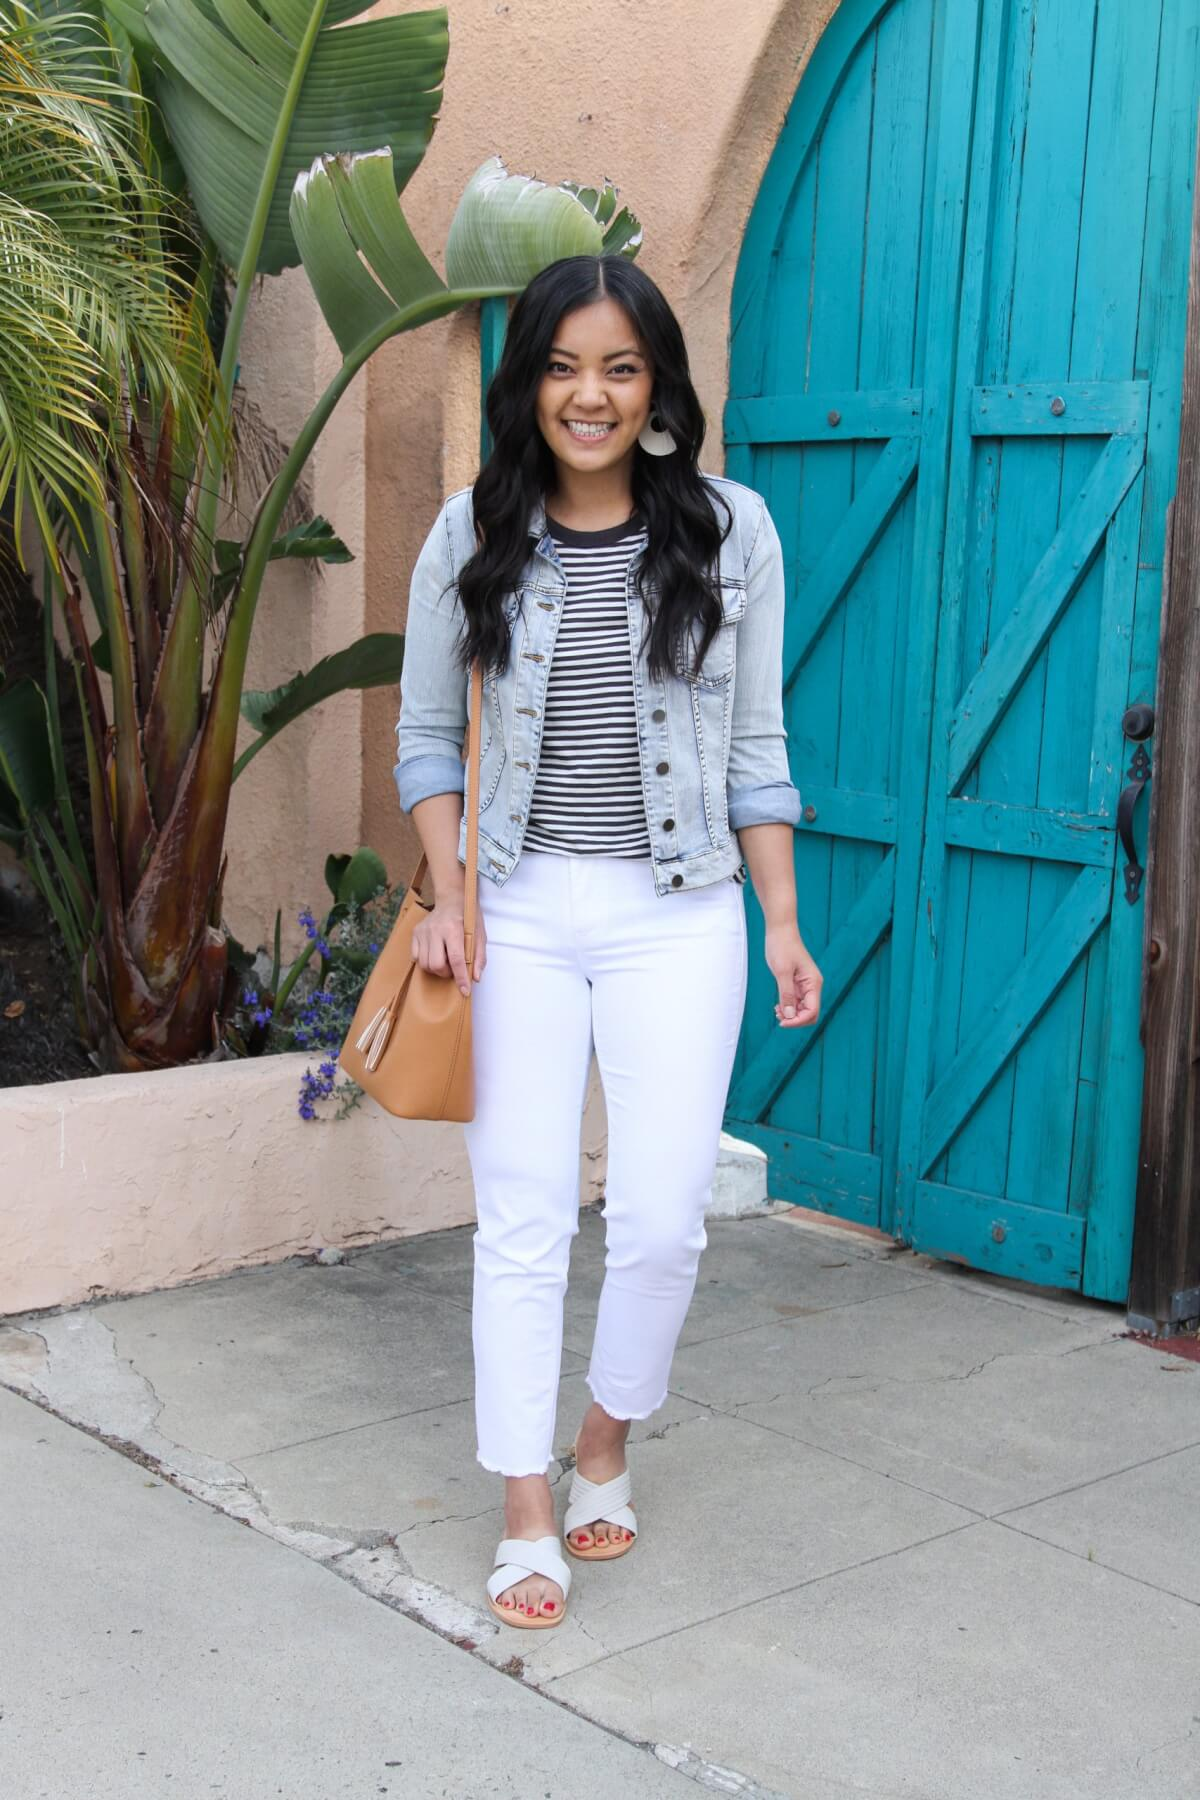 Easy to Wear Shoes for Spring: DV by Dolce Vita Lyra white slides + Madewell black and white striped tee + white straight leg jeans + denim jacket + white earrings + tan bag